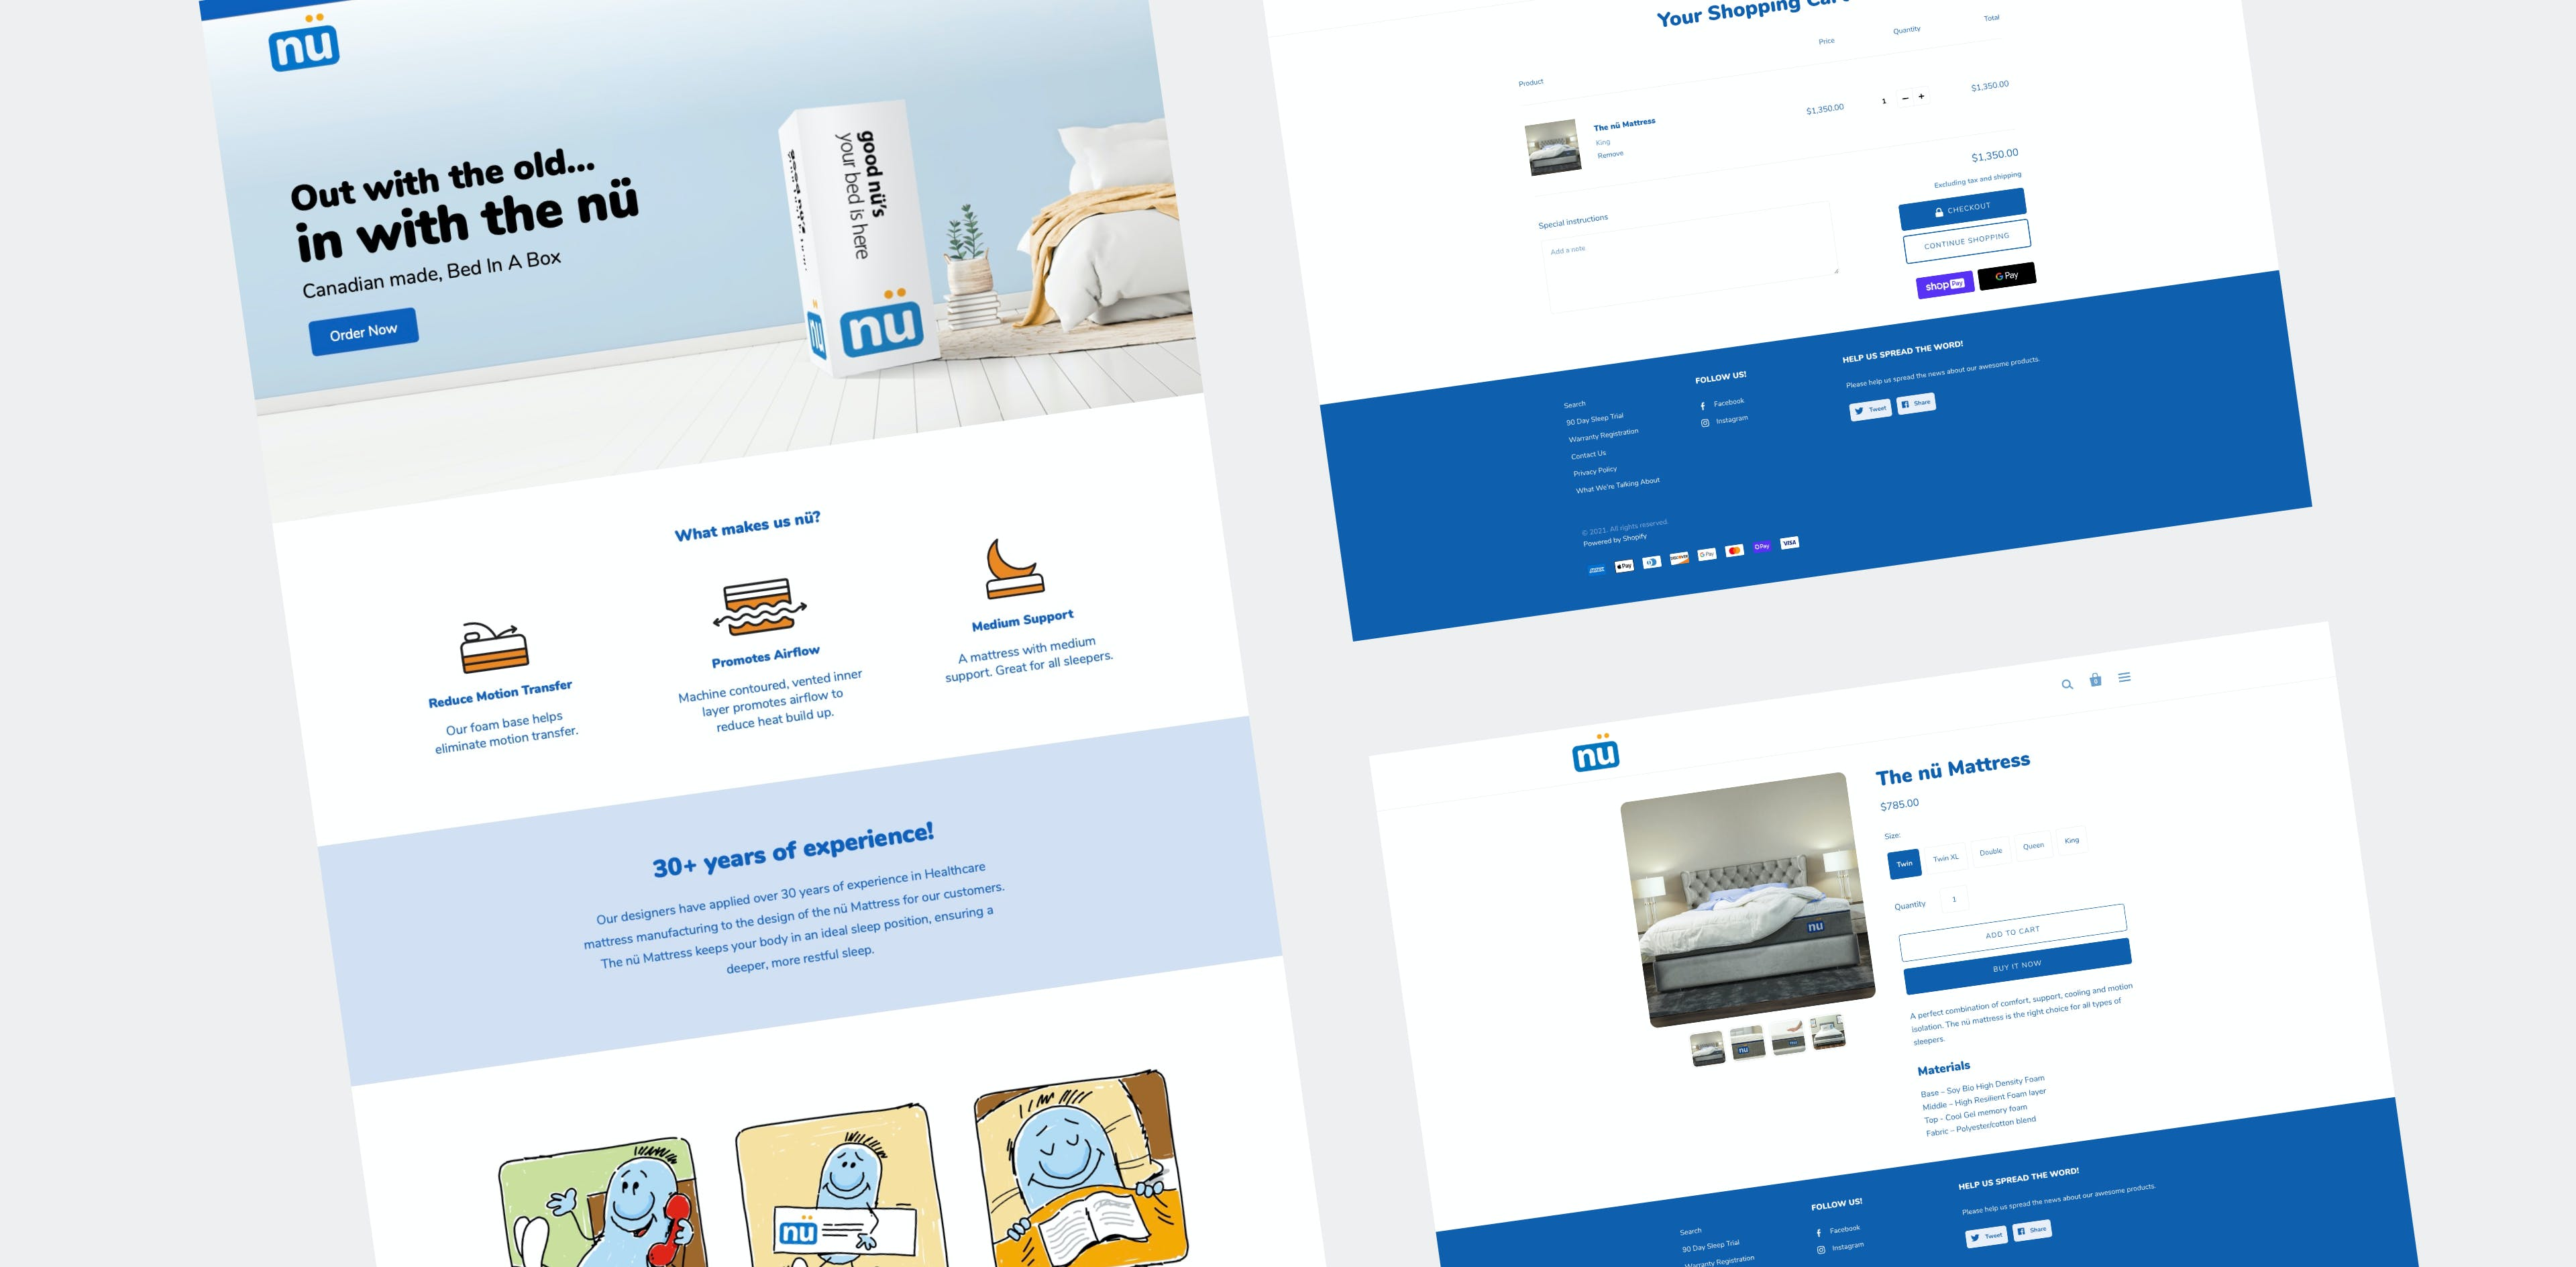 Nu Website Home Page, Cart, and Product Page